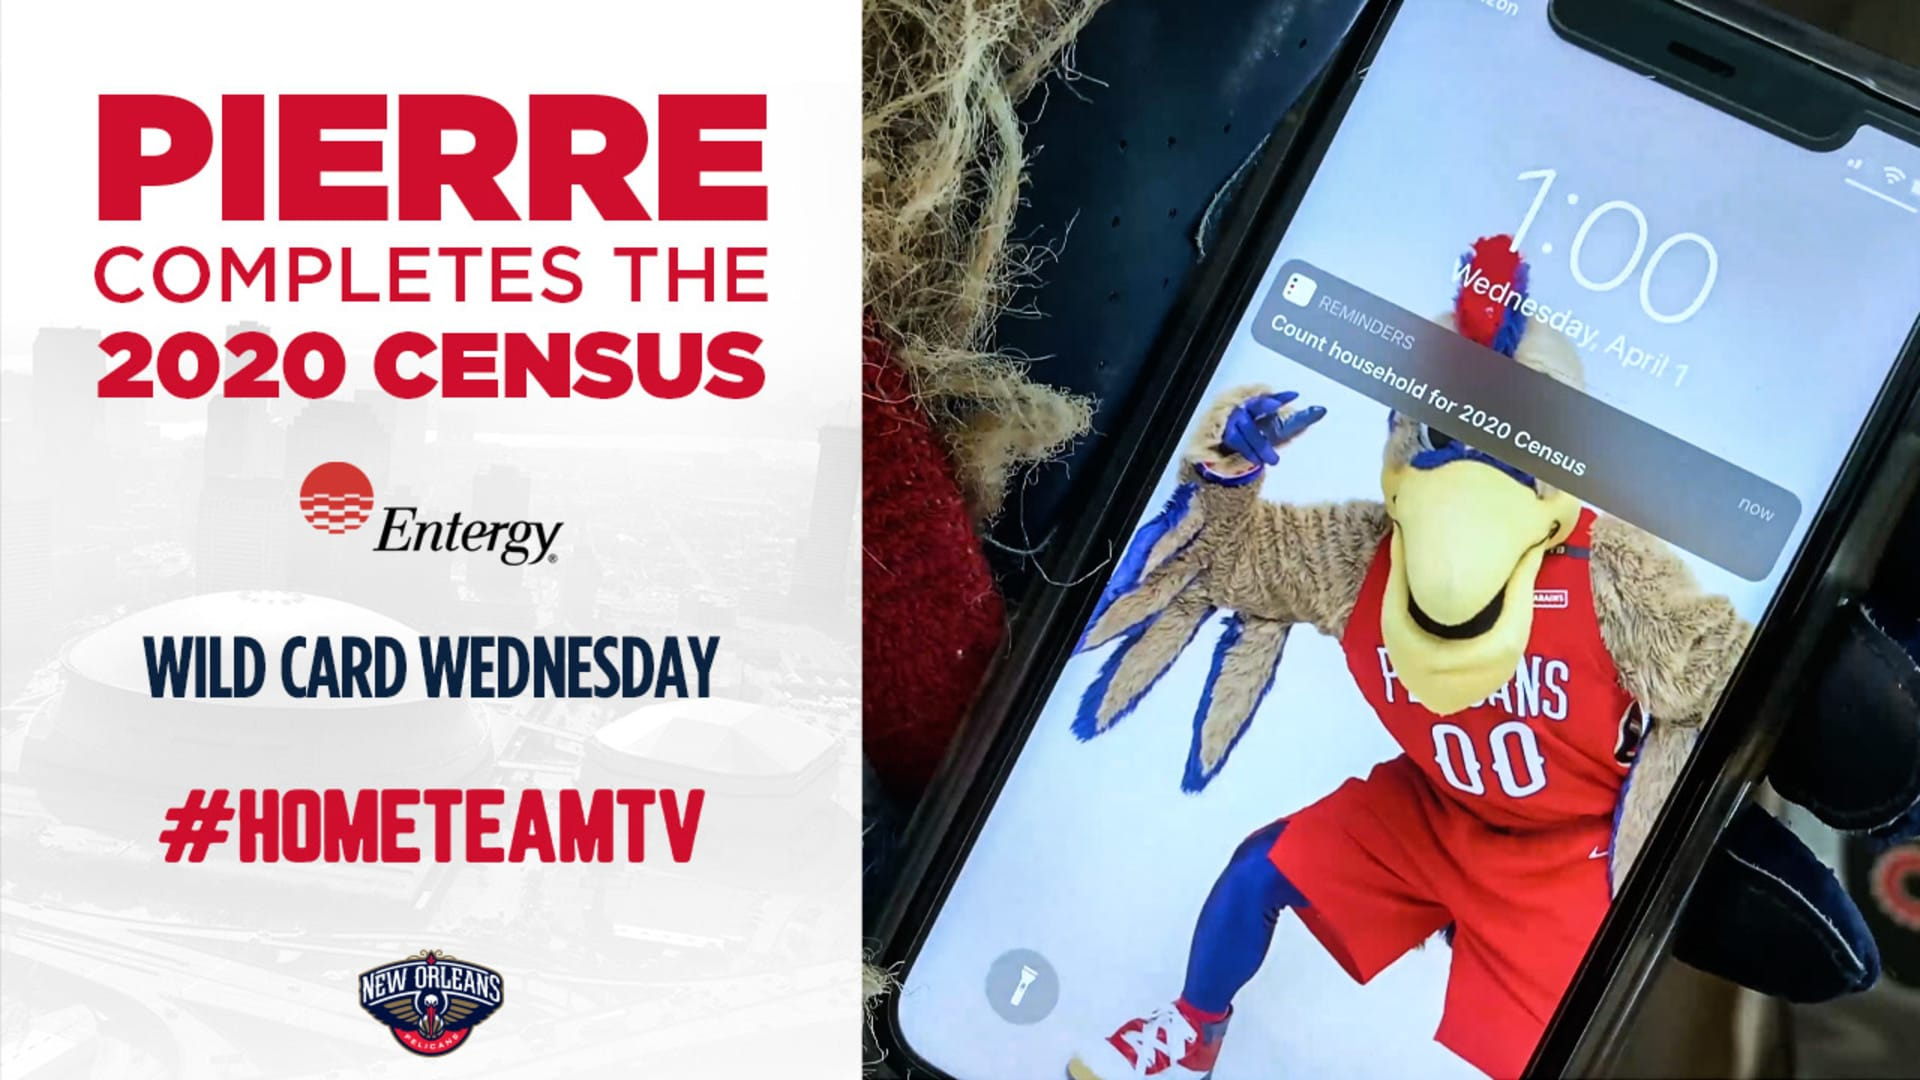 HomeTeamTV: Pierre completes 2020 census on Wild Card Wednesday, 5/20/20